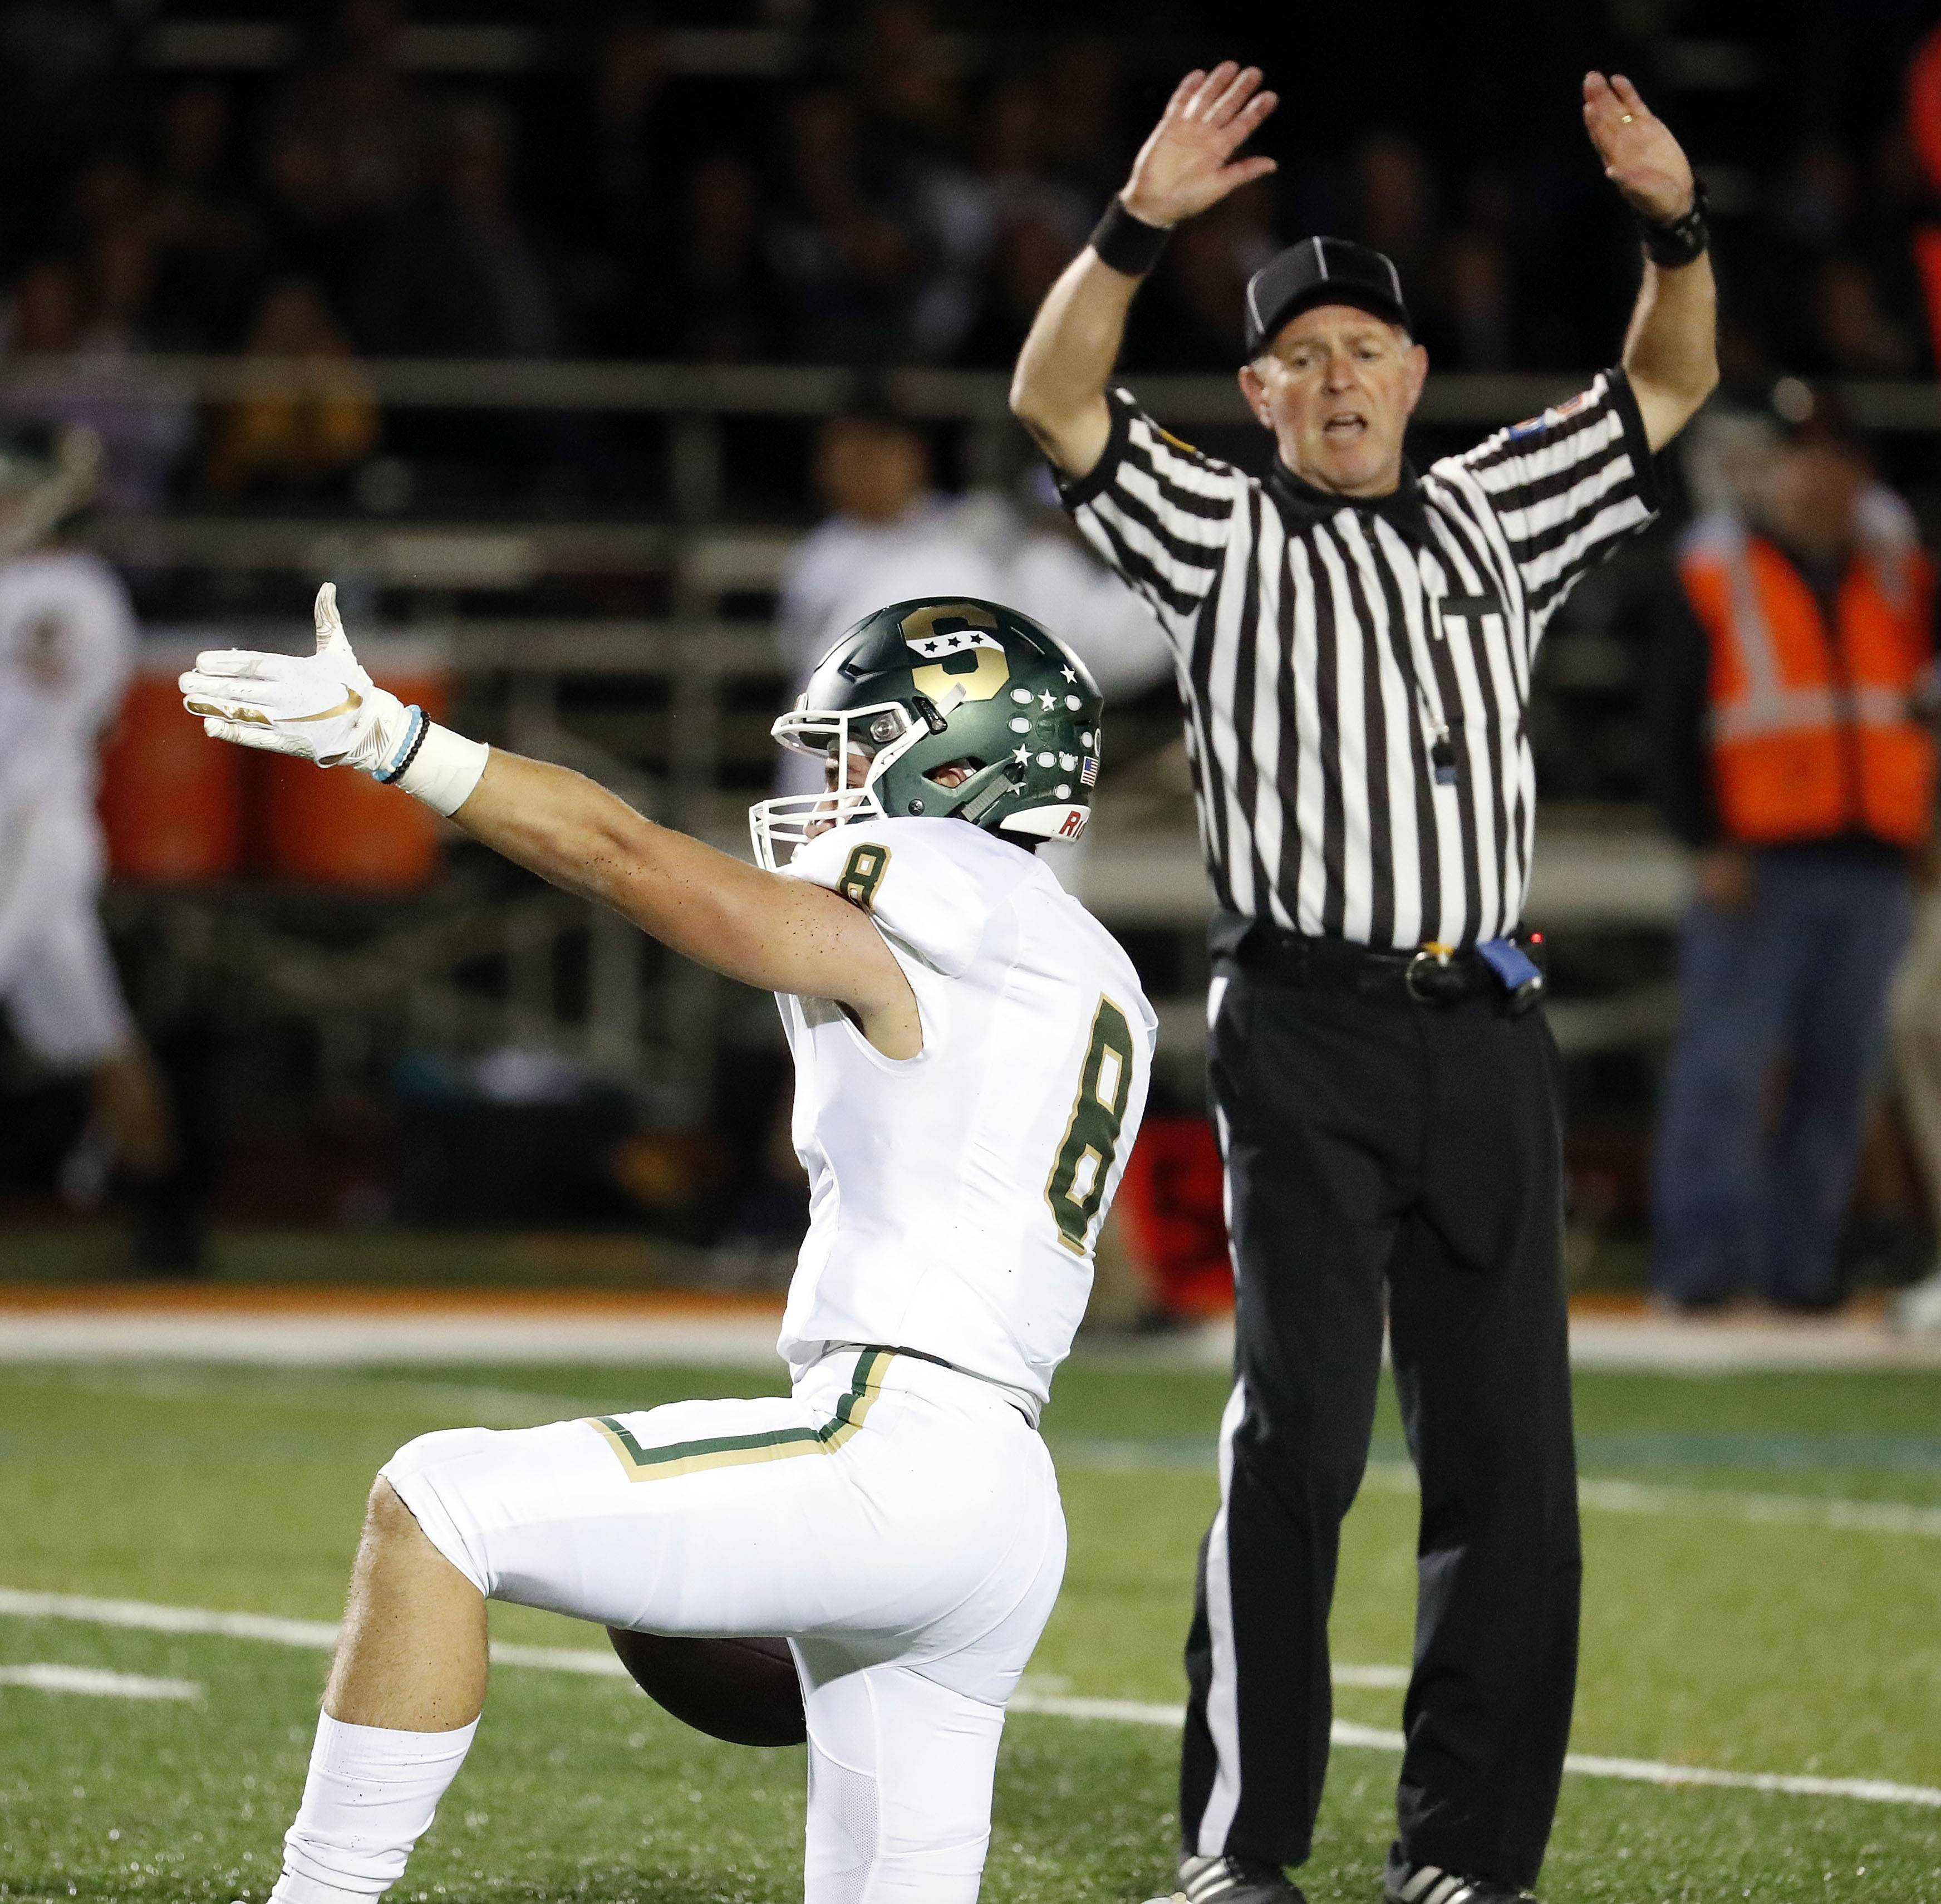 Stevenson's Ryan McElhinny celebrates after a catch during their game Friday night in Libertyville.